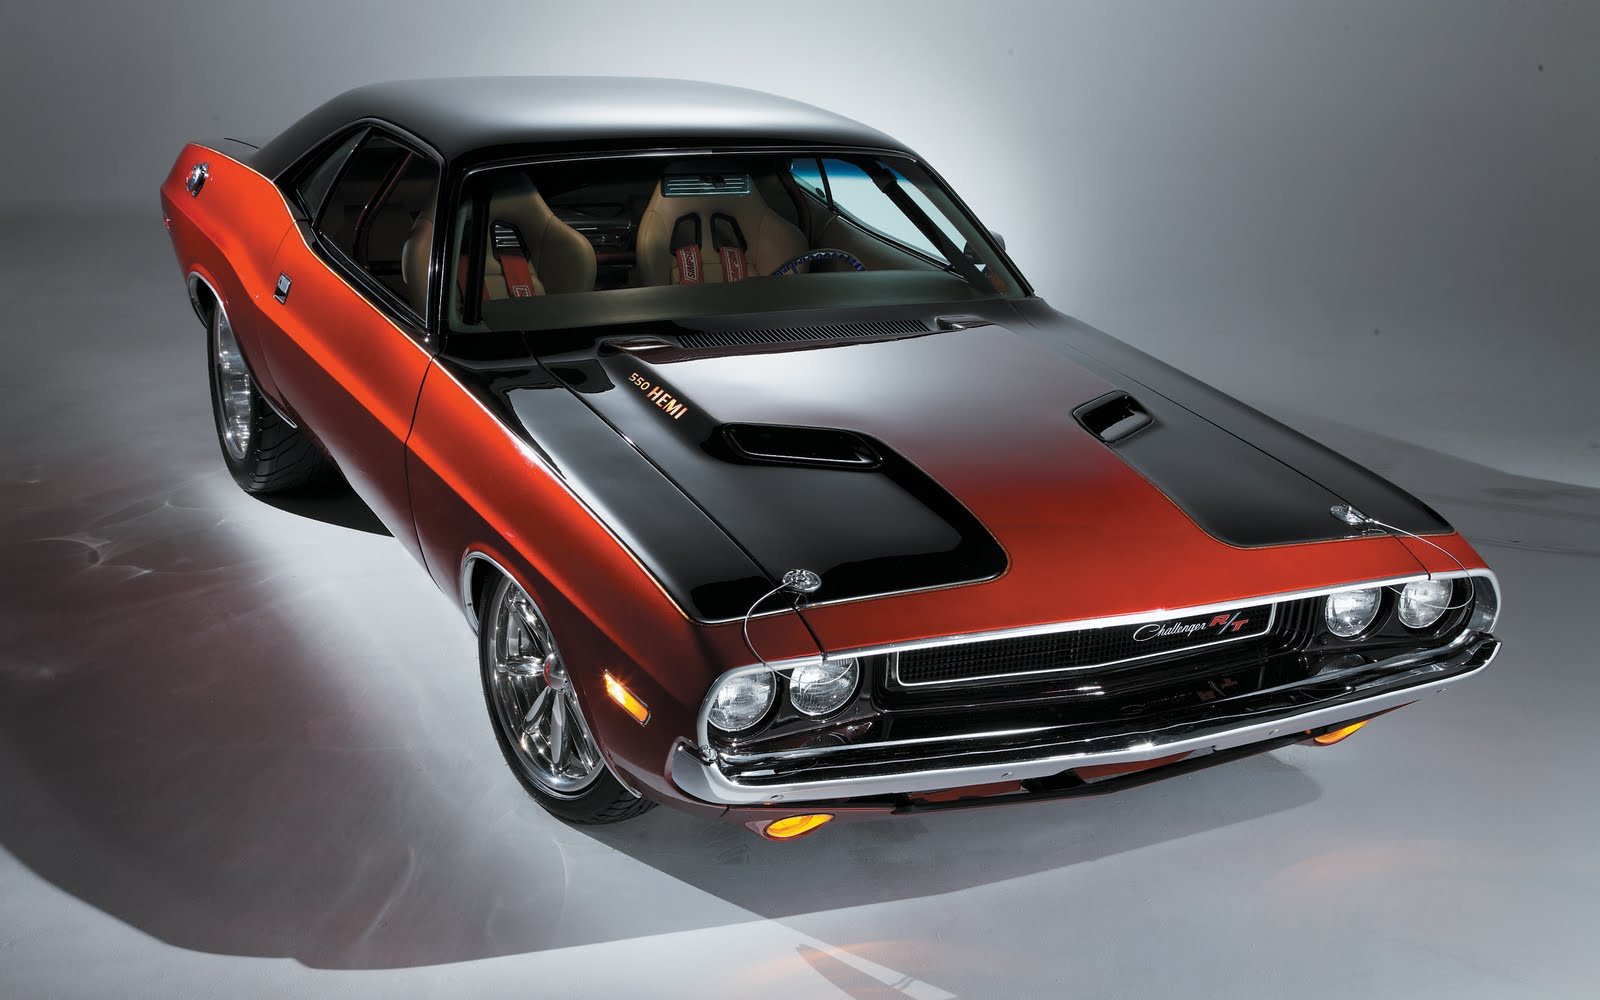 Dodge Challenger HD Wallpaper HD Car Wallpapers 1600x1000